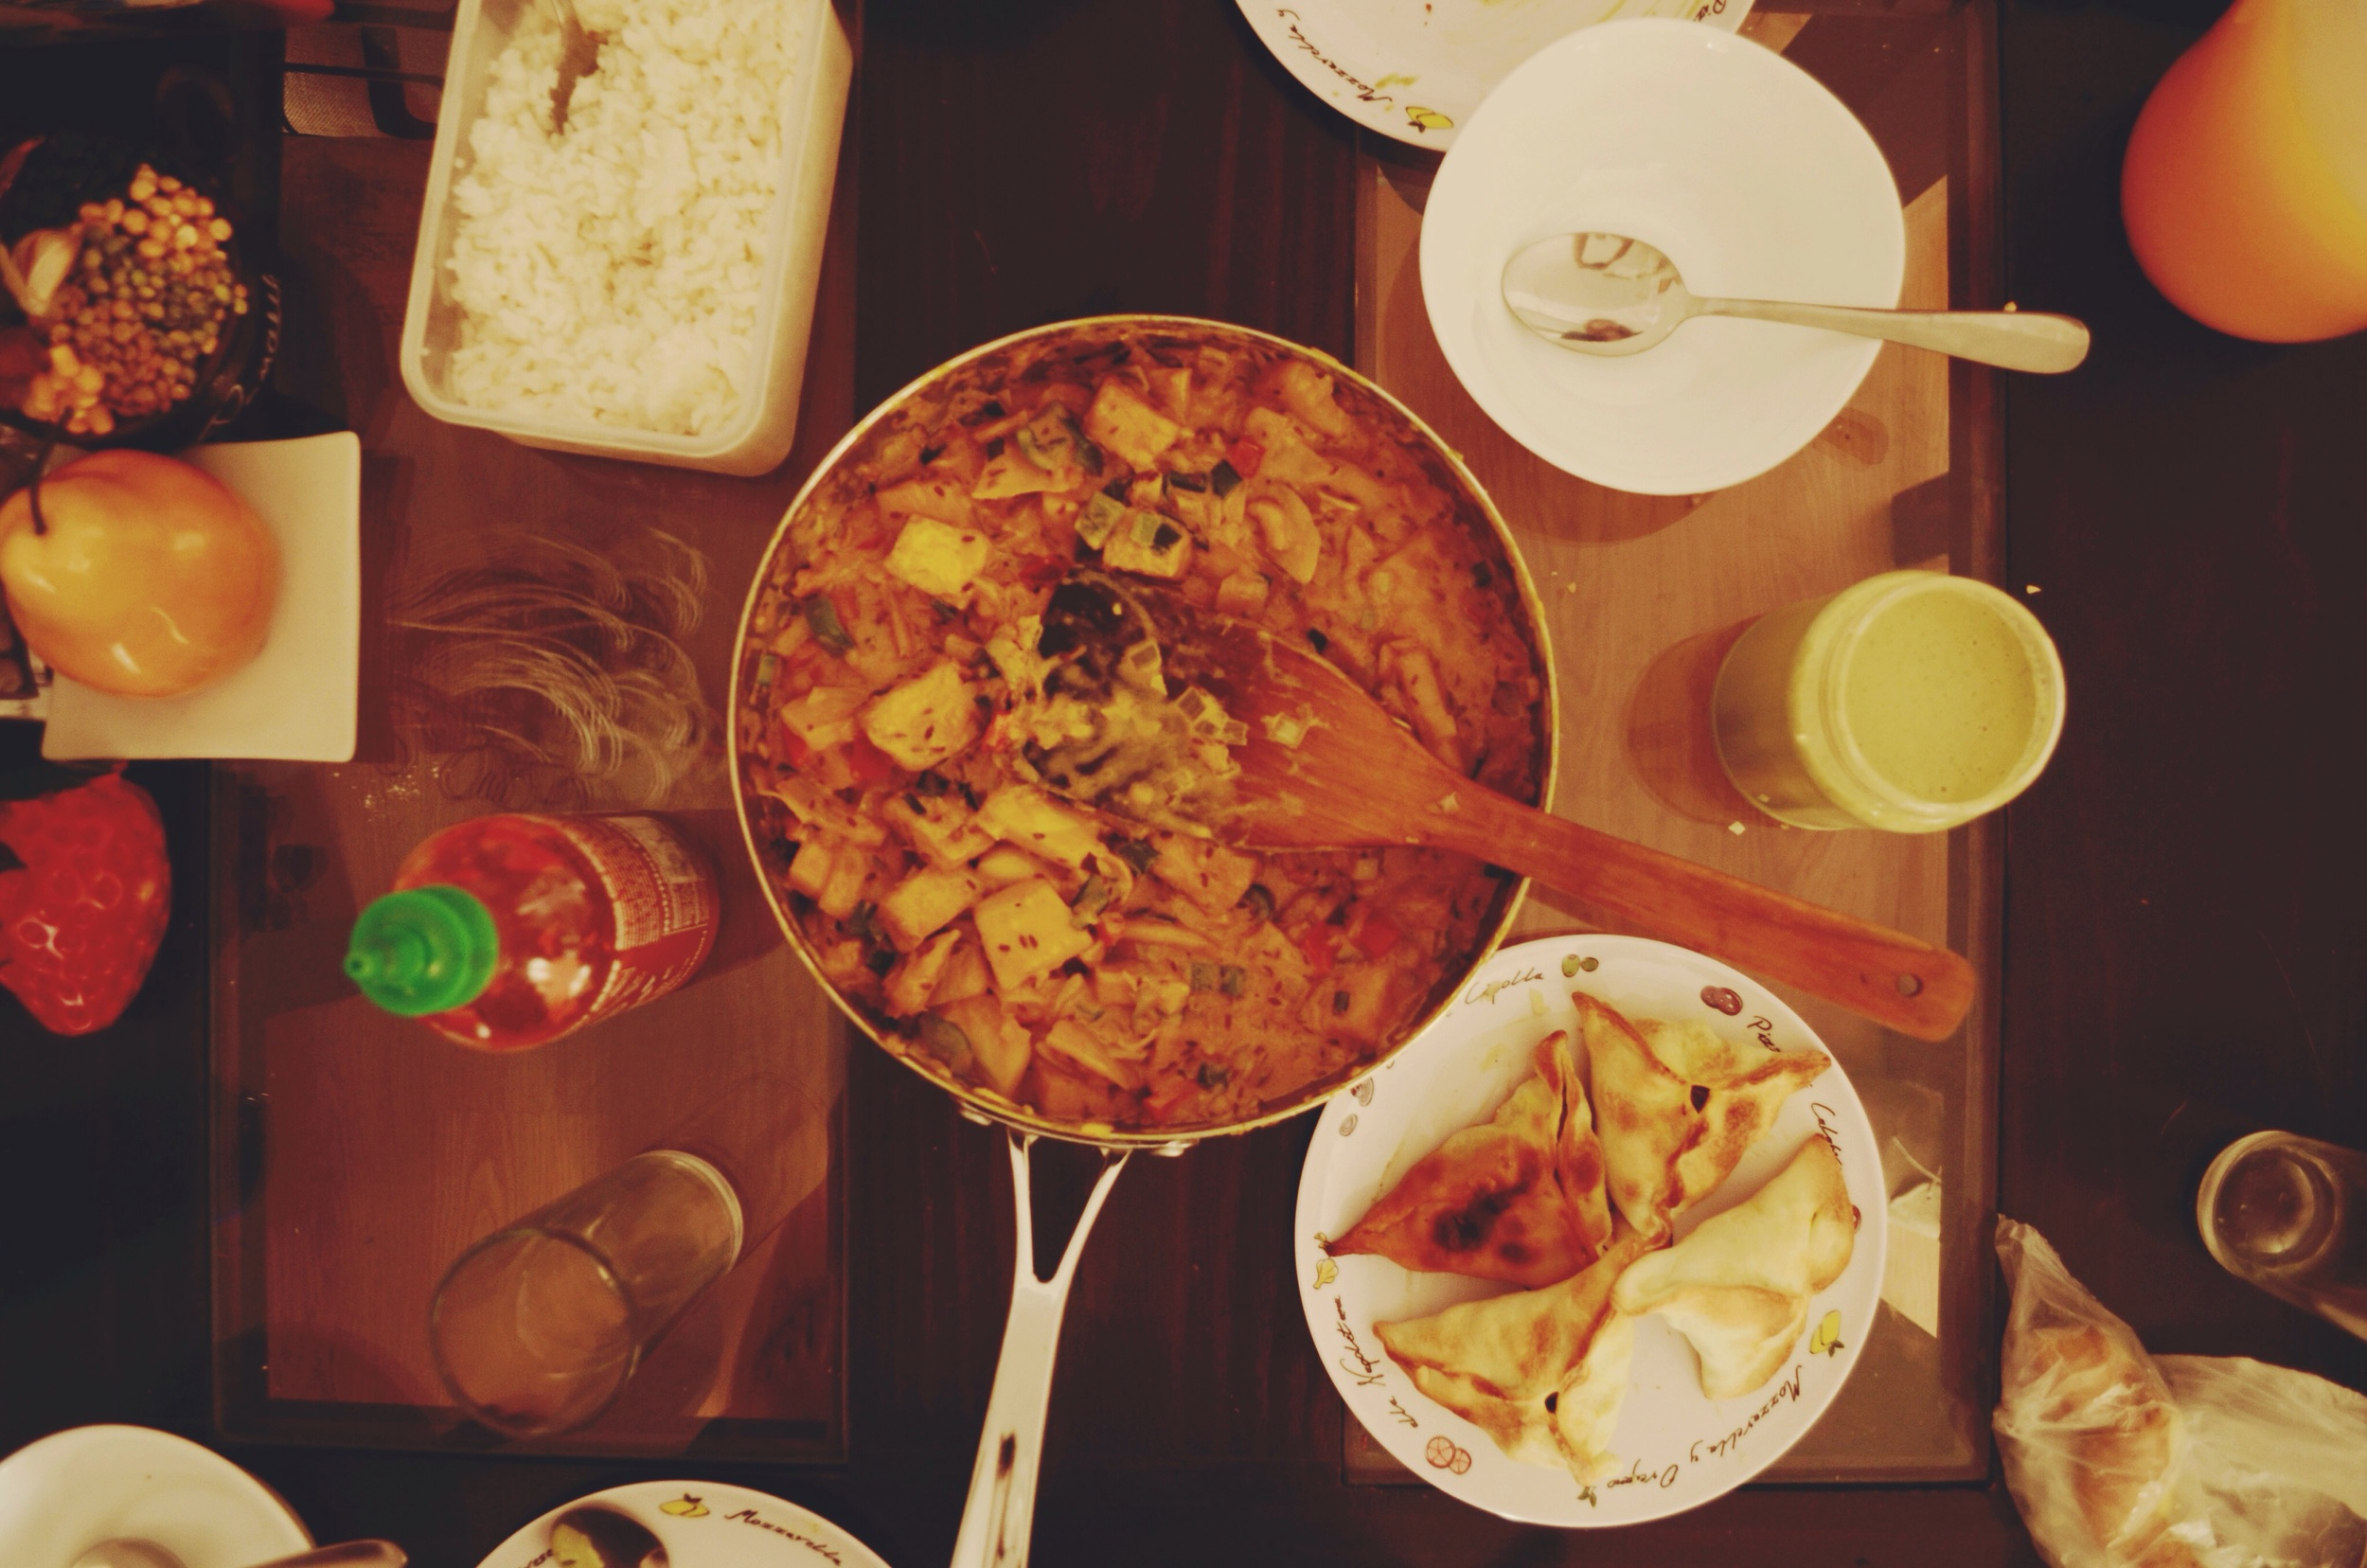 I'll start off with a bang...here is our entire scrumptious feast, complete with sriracha sauce and homemade cilantro dip for the samosas (thanks Quyên!) // 10 may 2015